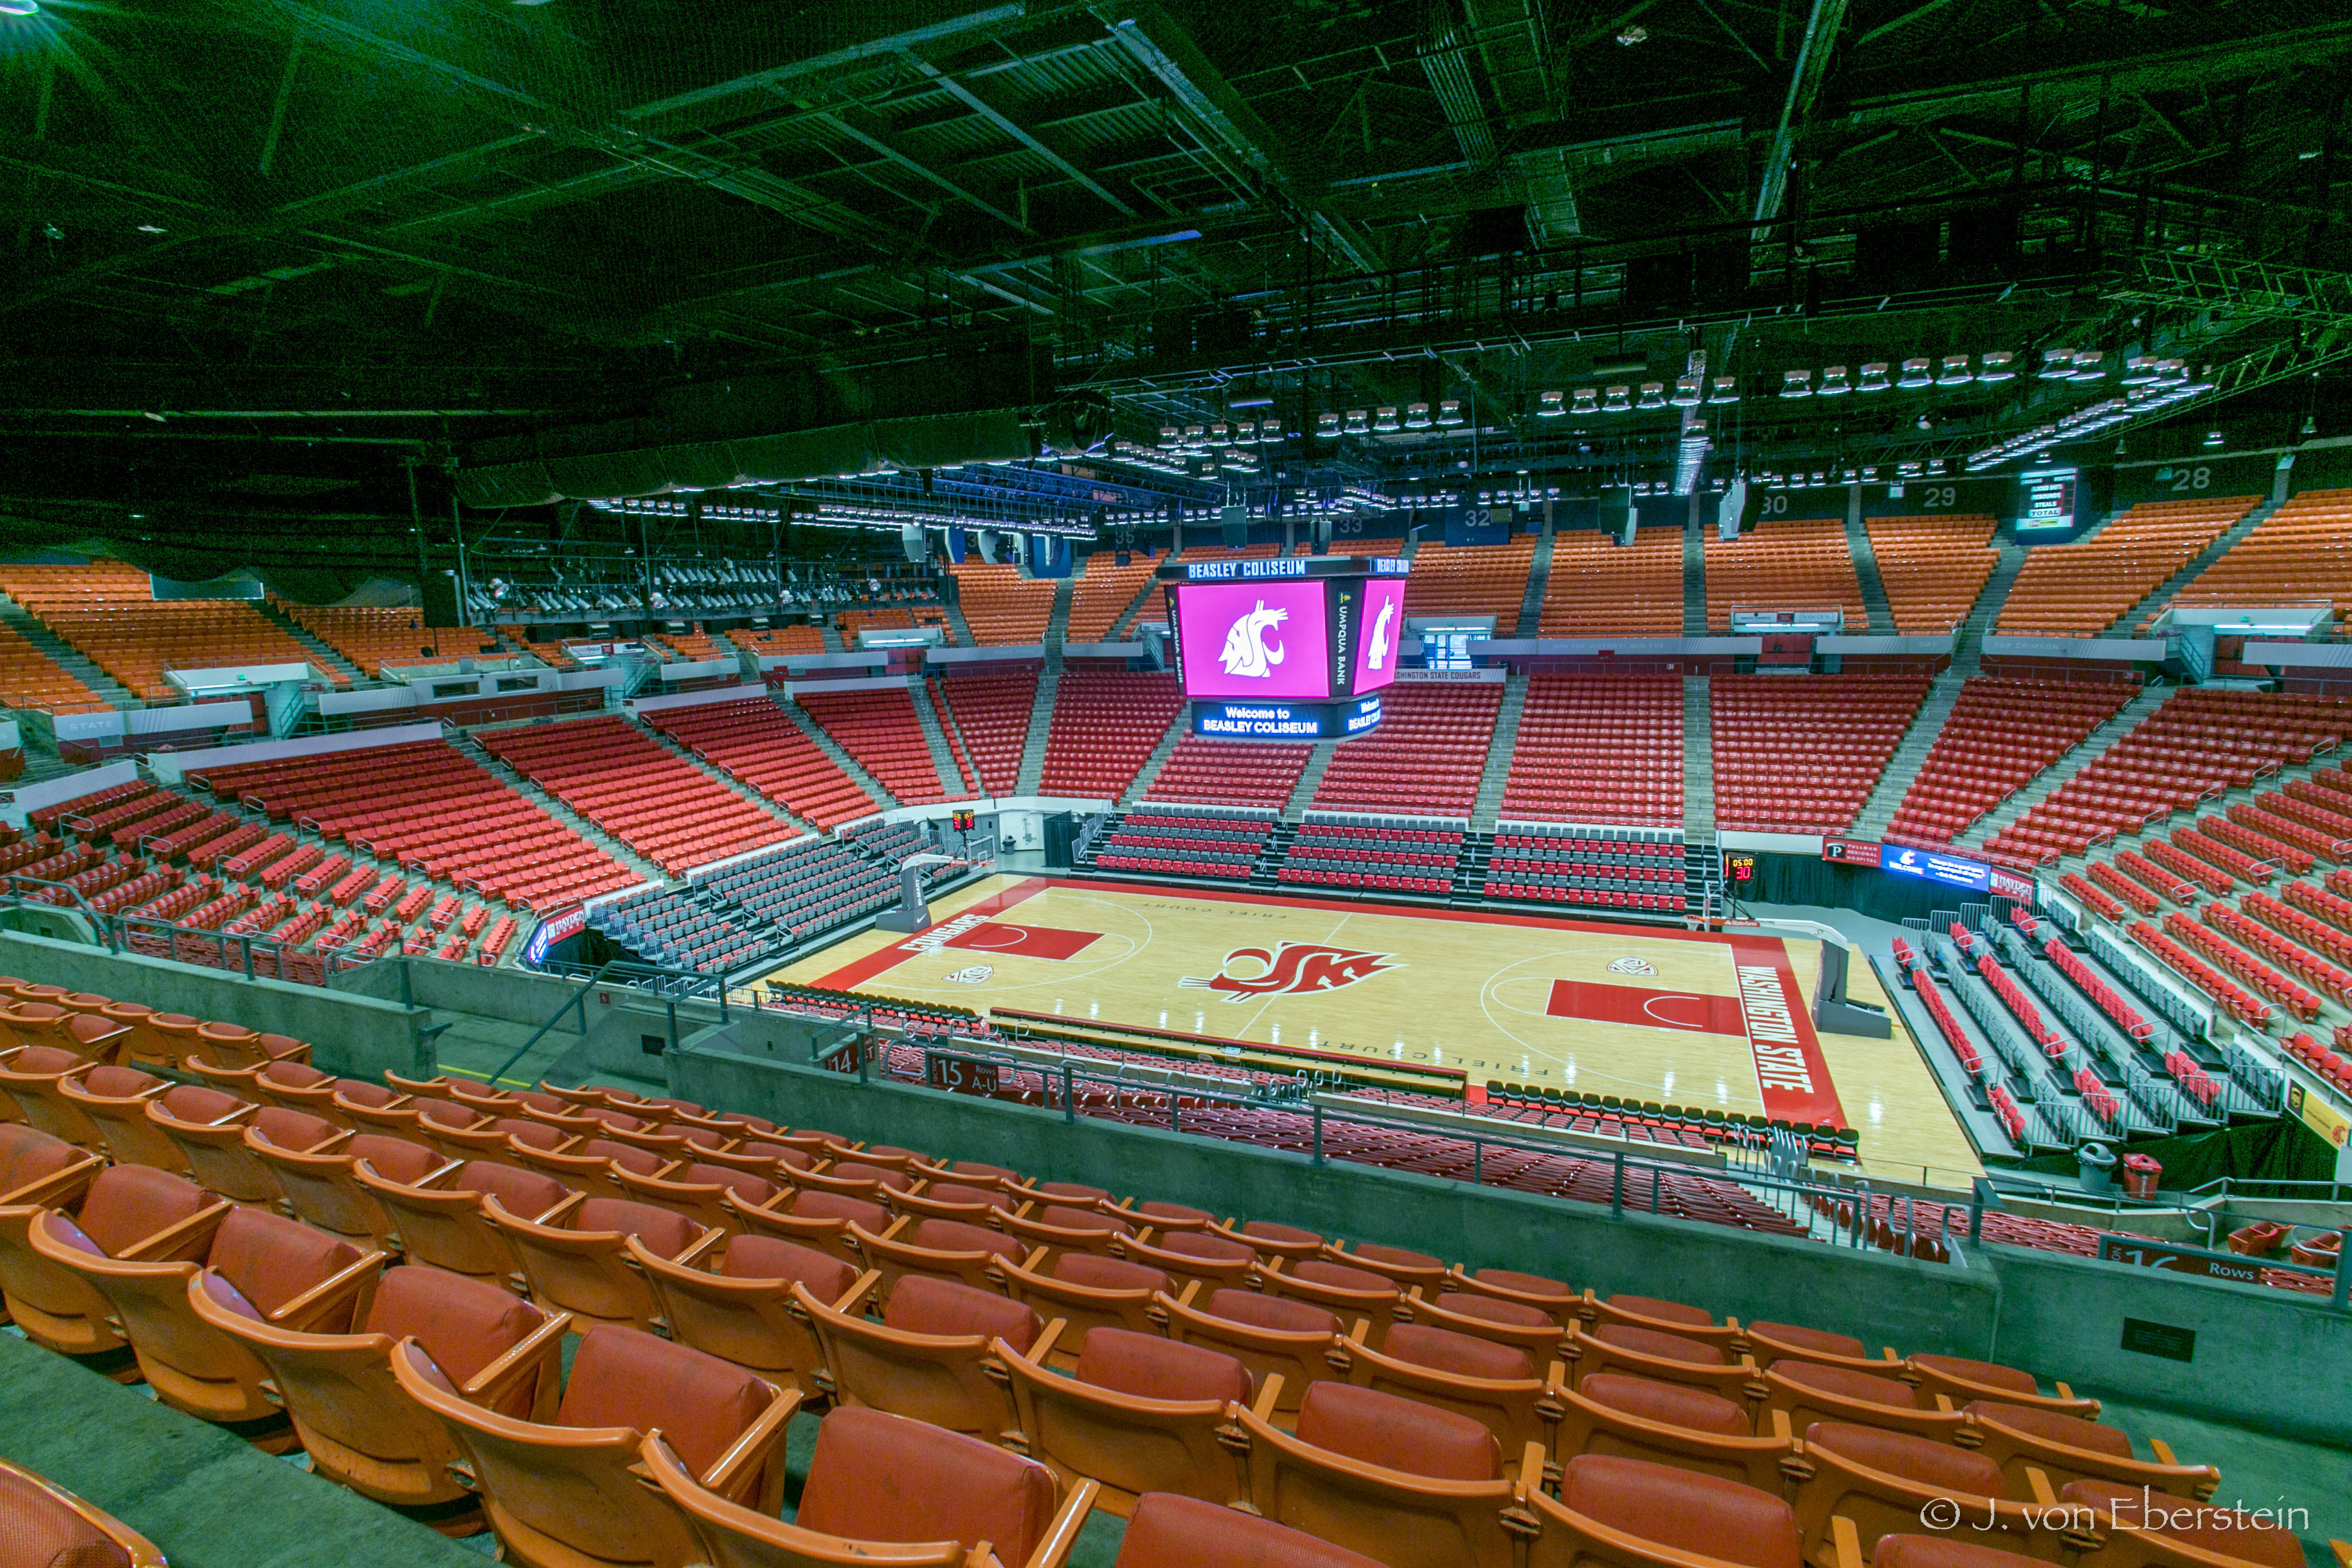 Beasley Coliseum, Washington State University, Pullman, WA